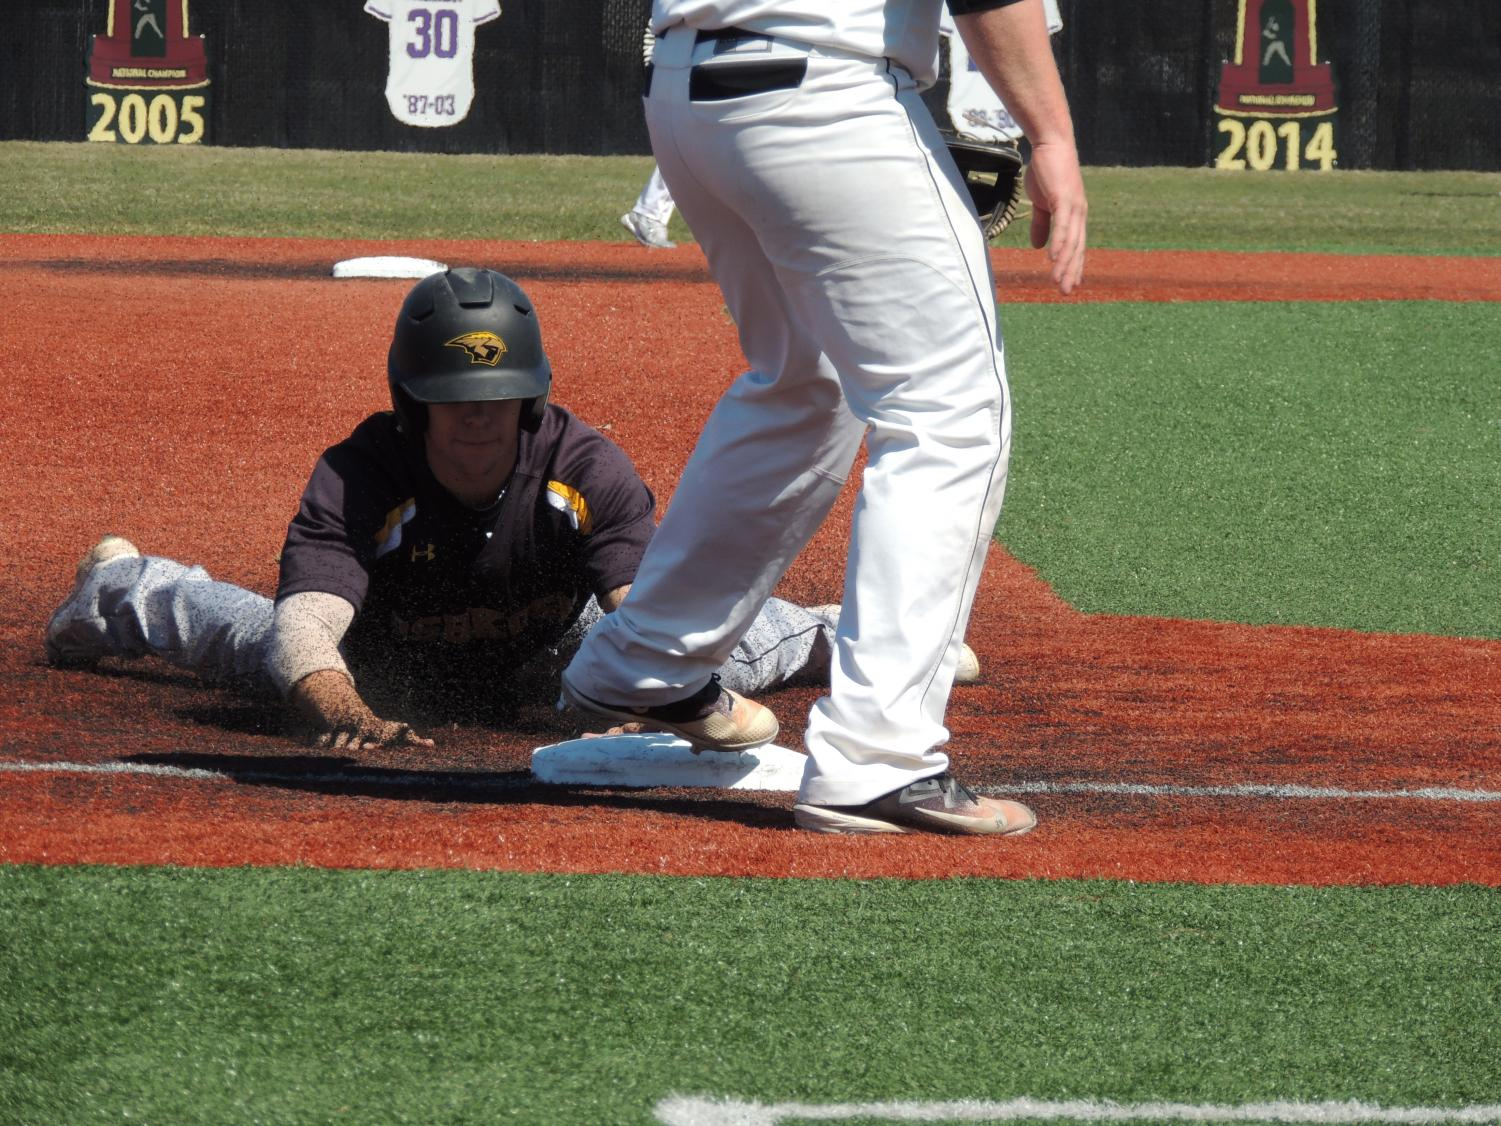 An Oshkosh baserunner slides head first into third base against the UW-Whitewater Warhawks on April 25.